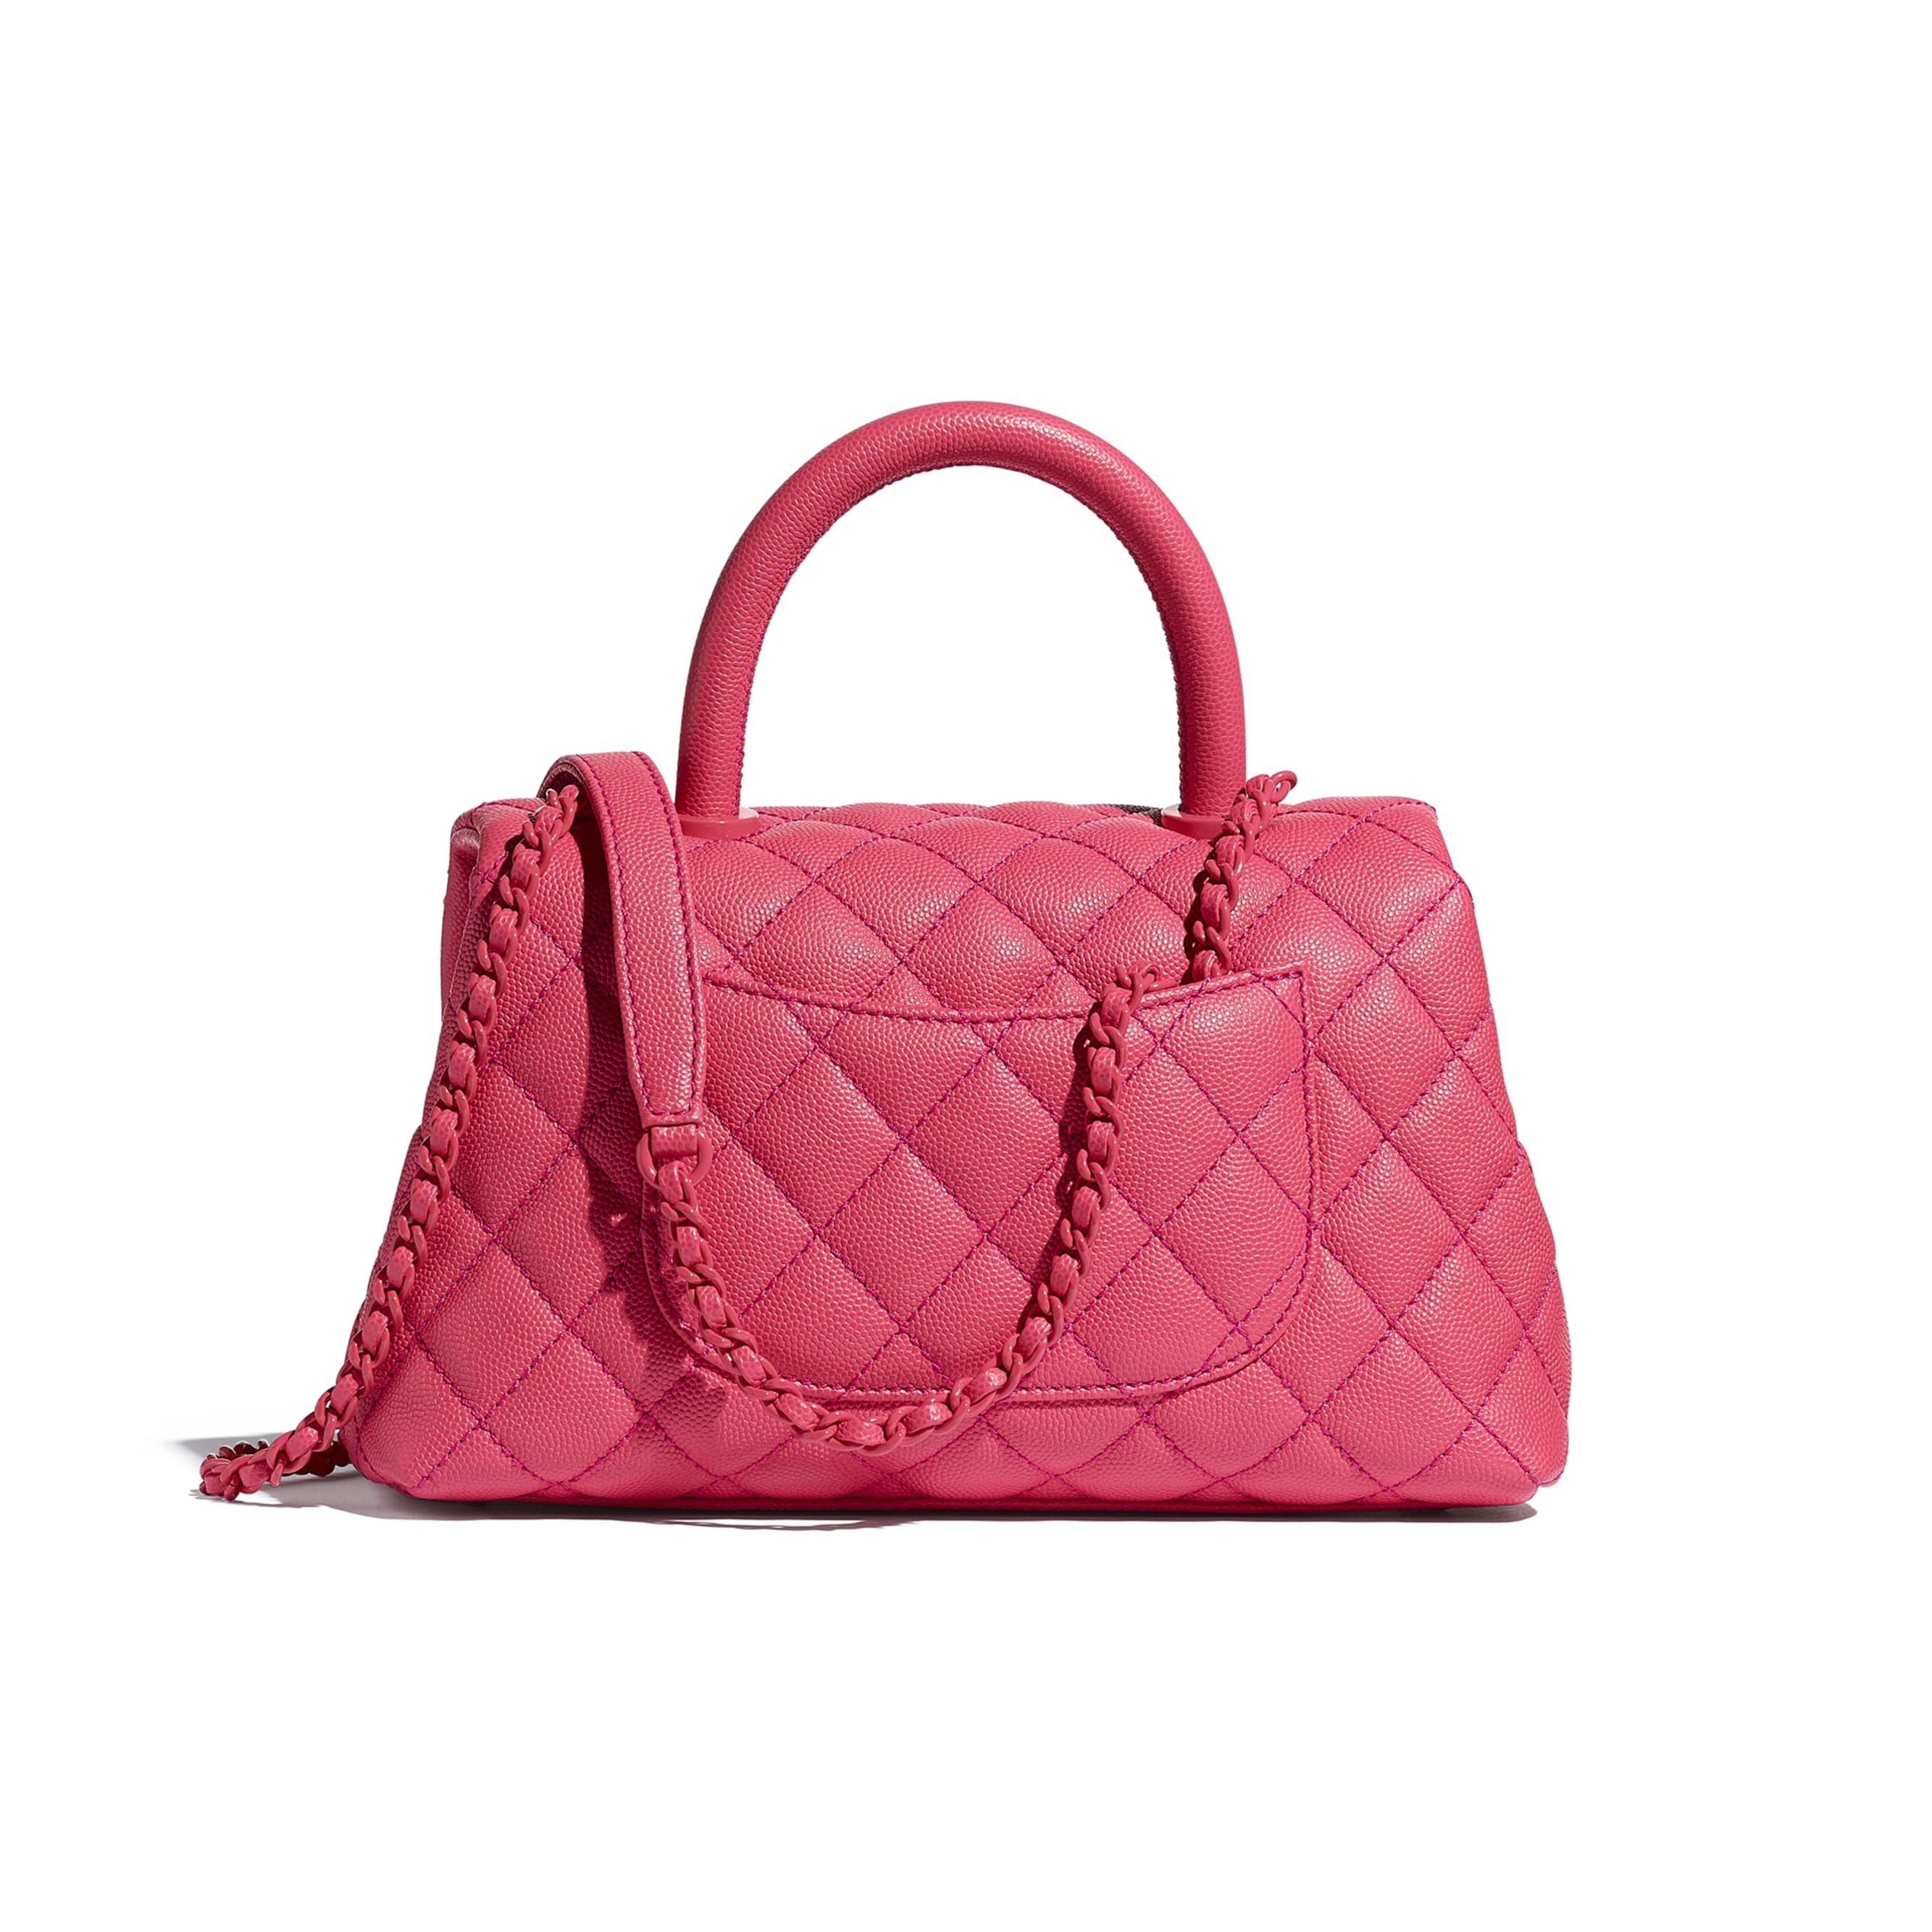 Small Flap Bag With Top Handle - Pink - Grained Calfskin & Lacquered Metal - CHANEL - Alternative view - see standard sized version